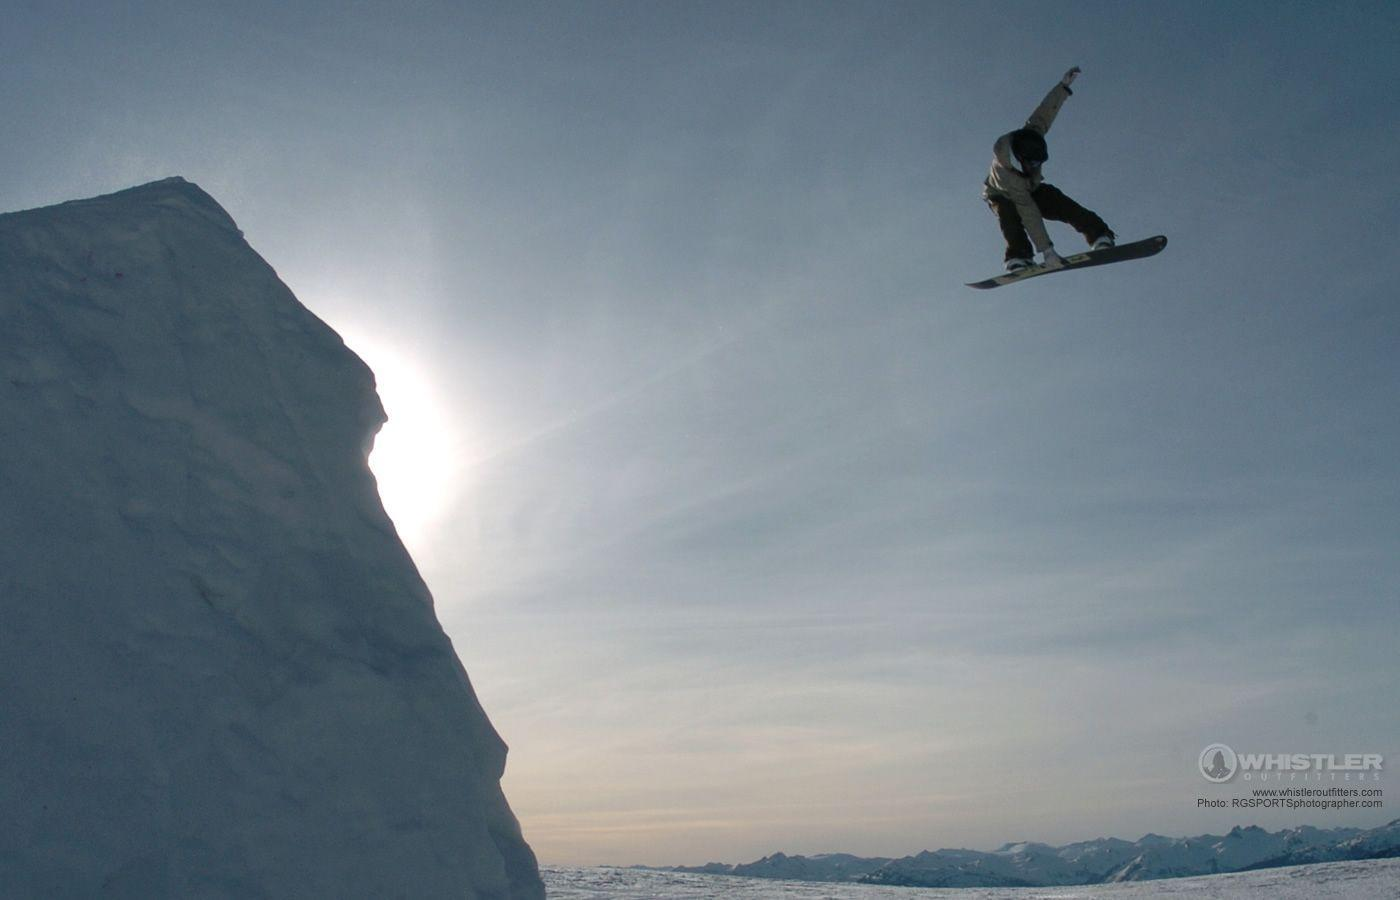 Snowboard Wallpaper of Whistler Canada - Whistler Outfitters ...